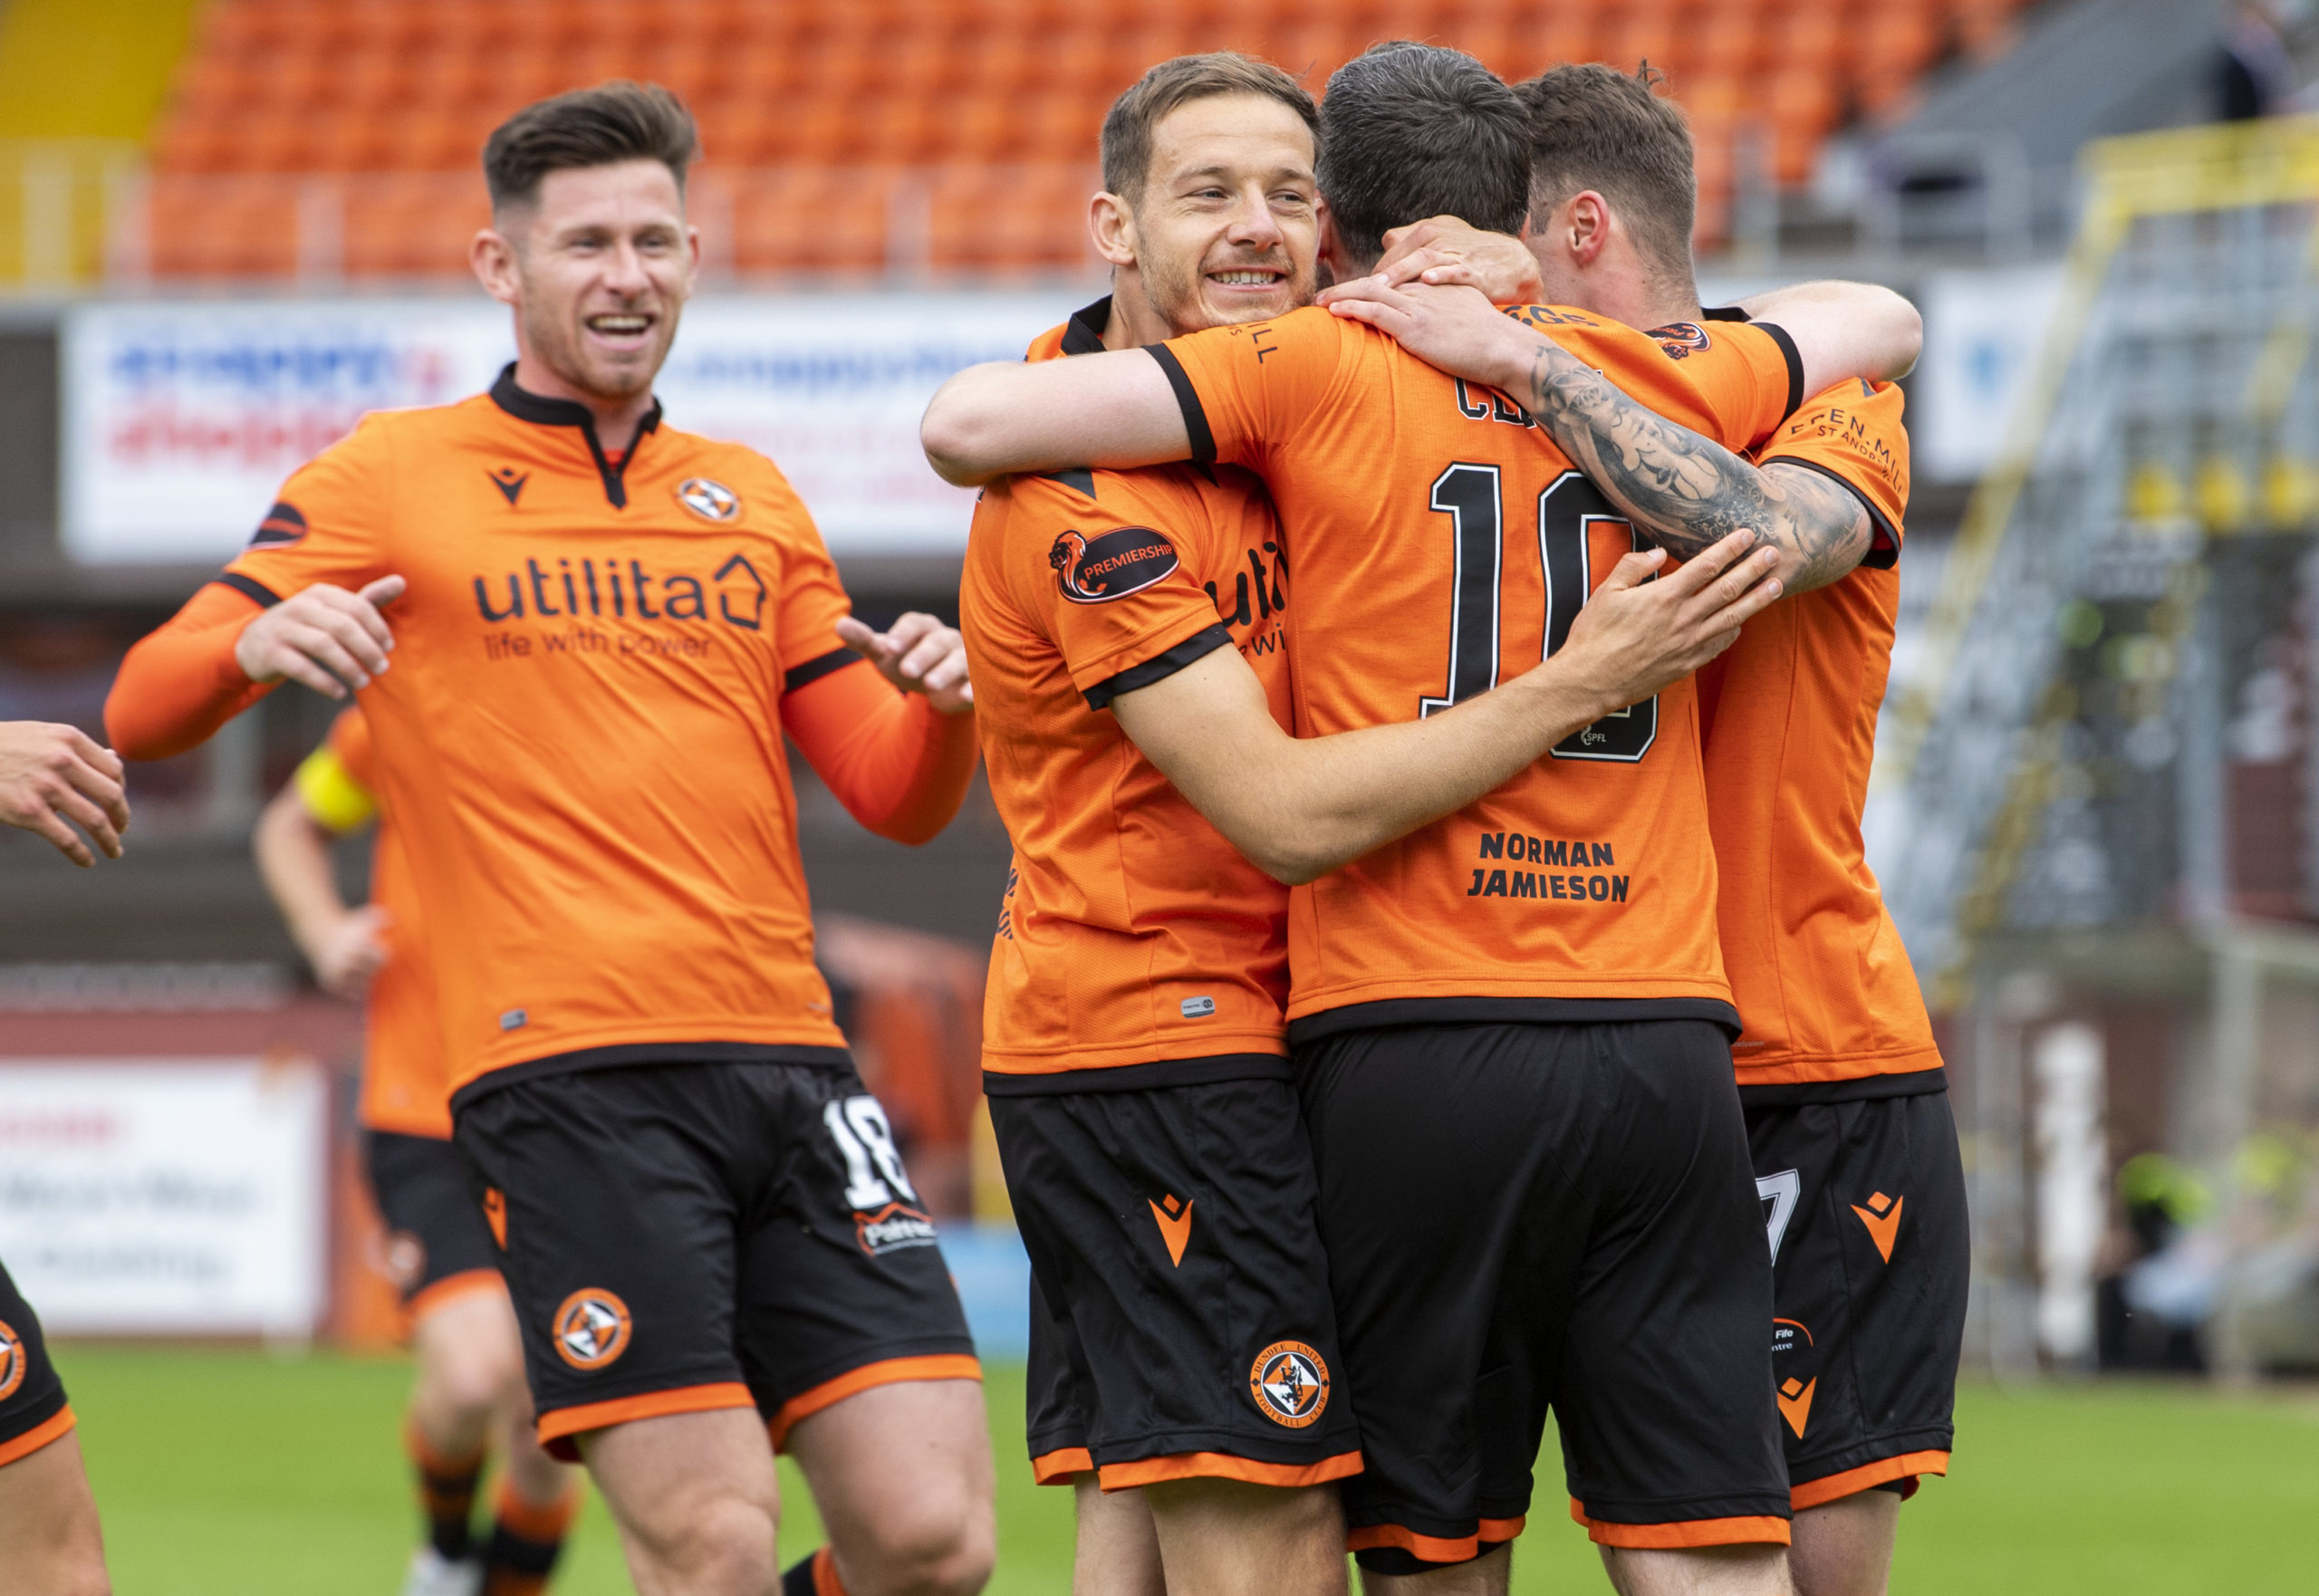 Dundee United's players celebrate Nicky Clark's opener during the Scottish Premiership match between Dundee United and St Johnstone at Tannadice.